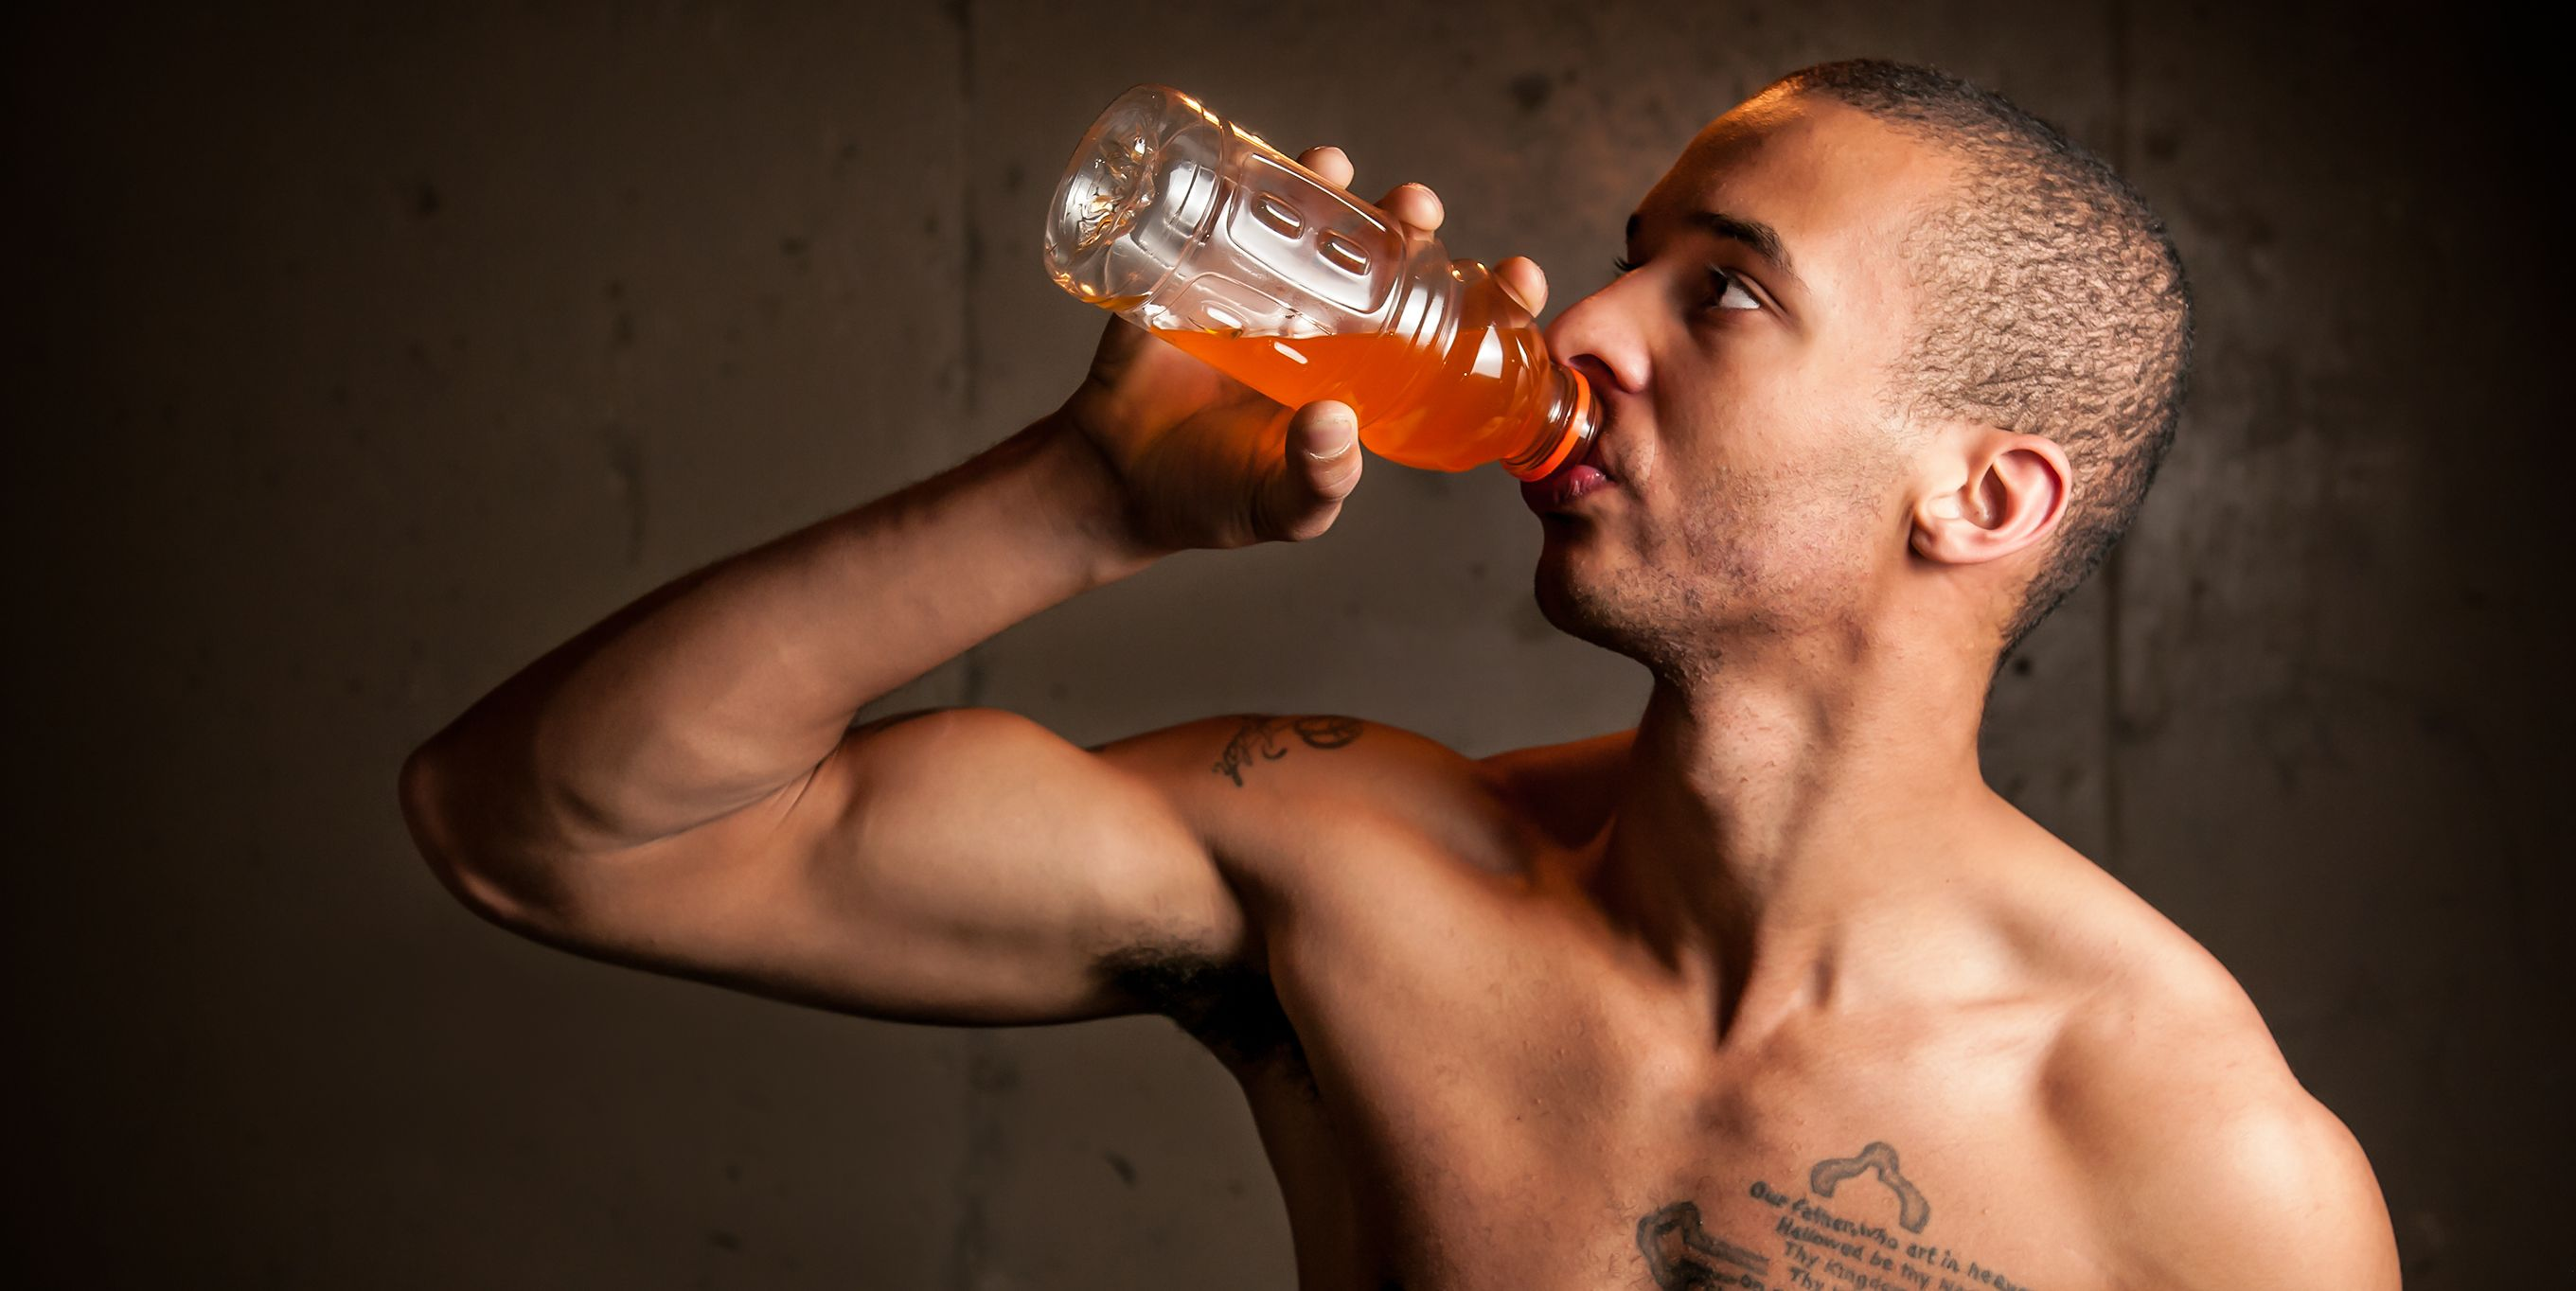 Black male drinking a sports drink